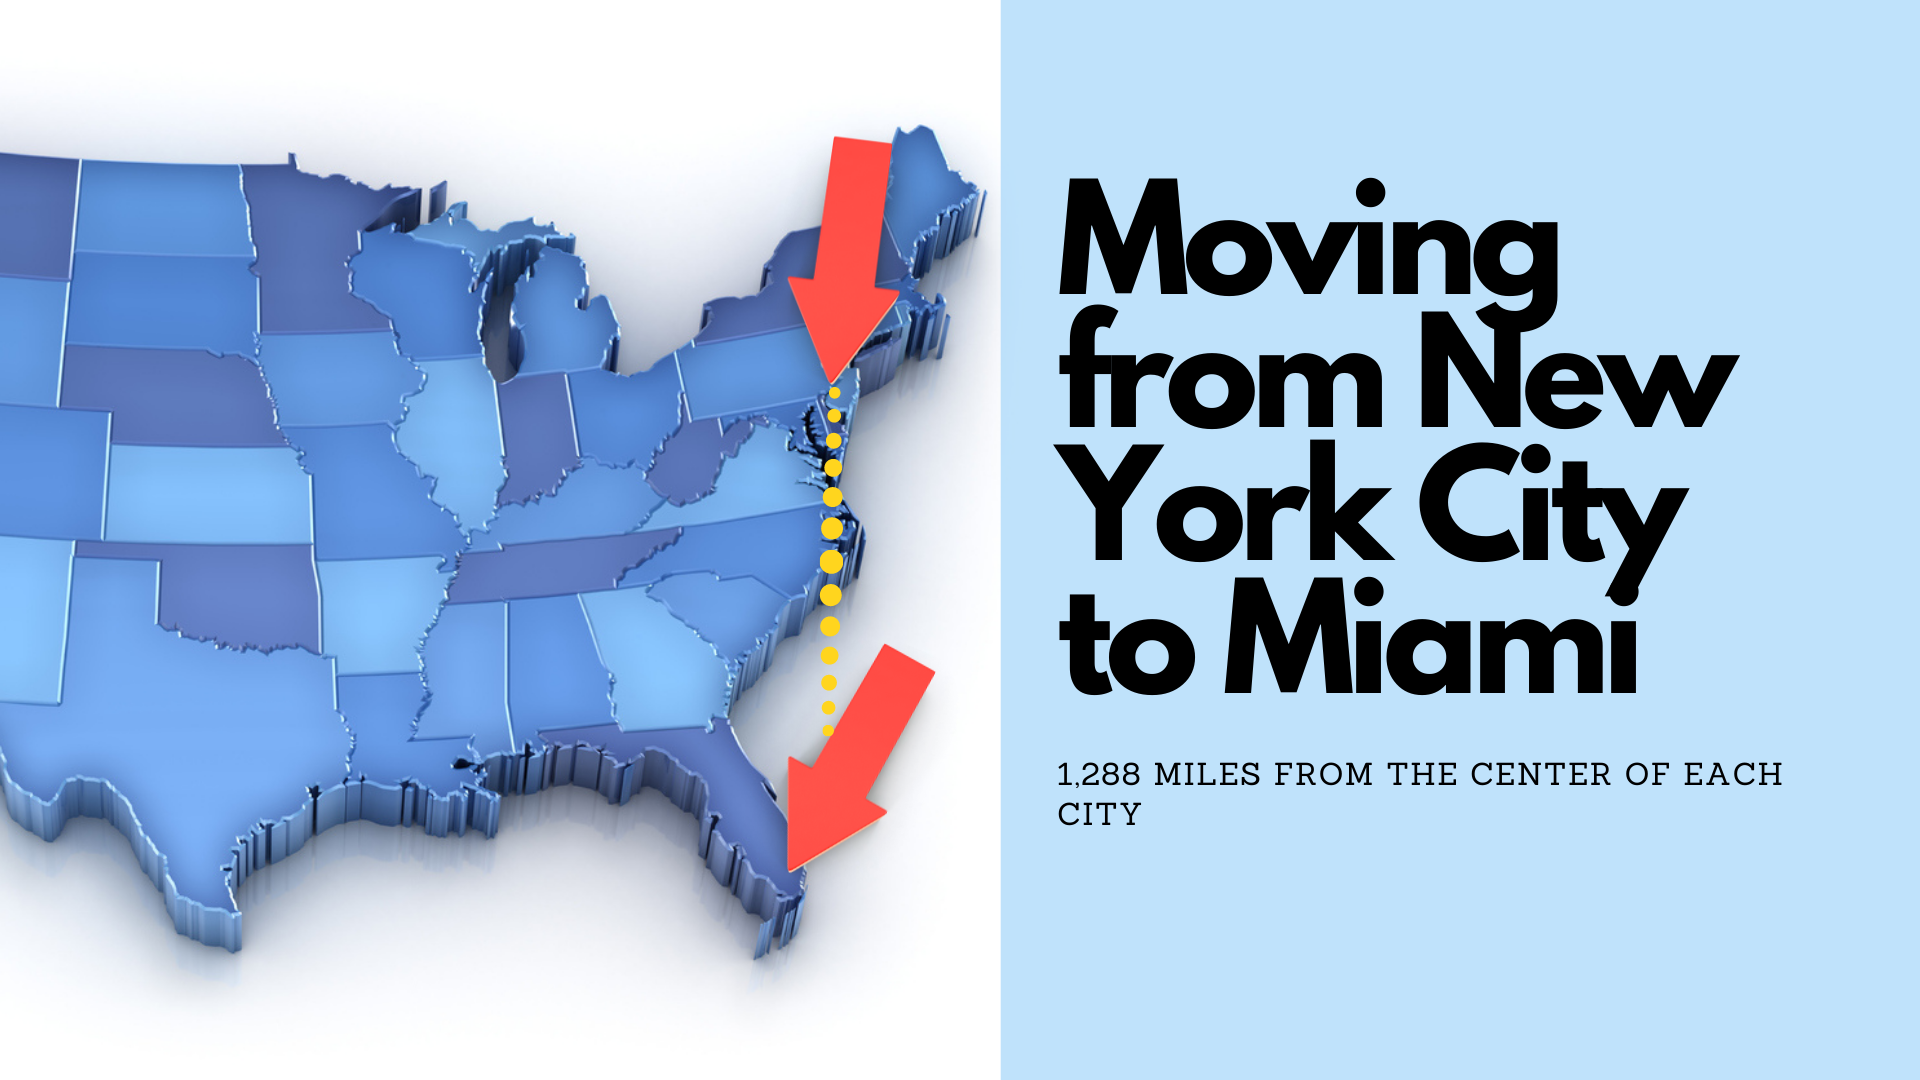 Moving from New York City to Miami